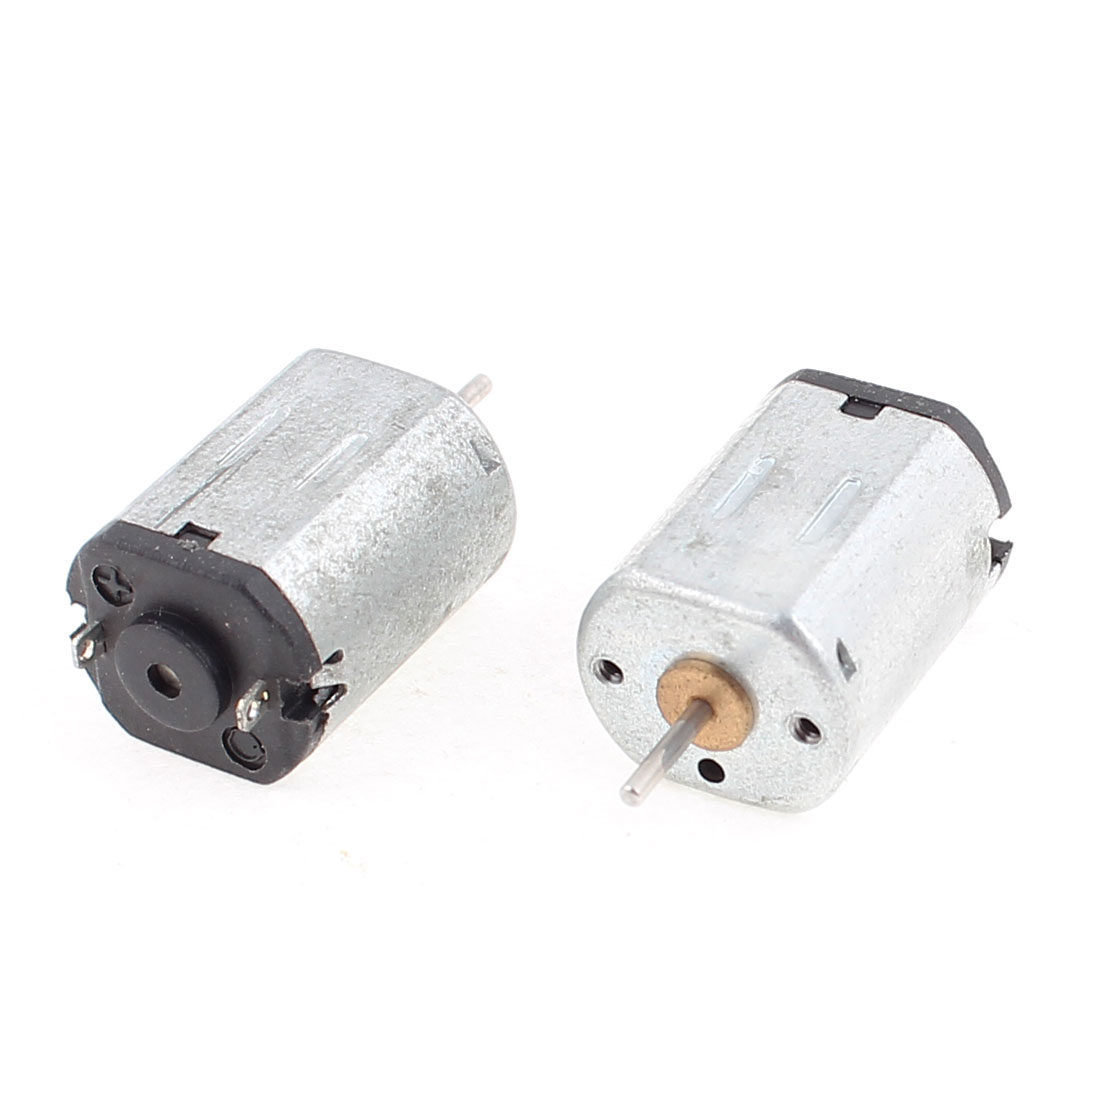 2Pcs DC 1.5-6V 26500RPM Speed Micro Motor N20 for RC Toy Model Airplane Smart Cars